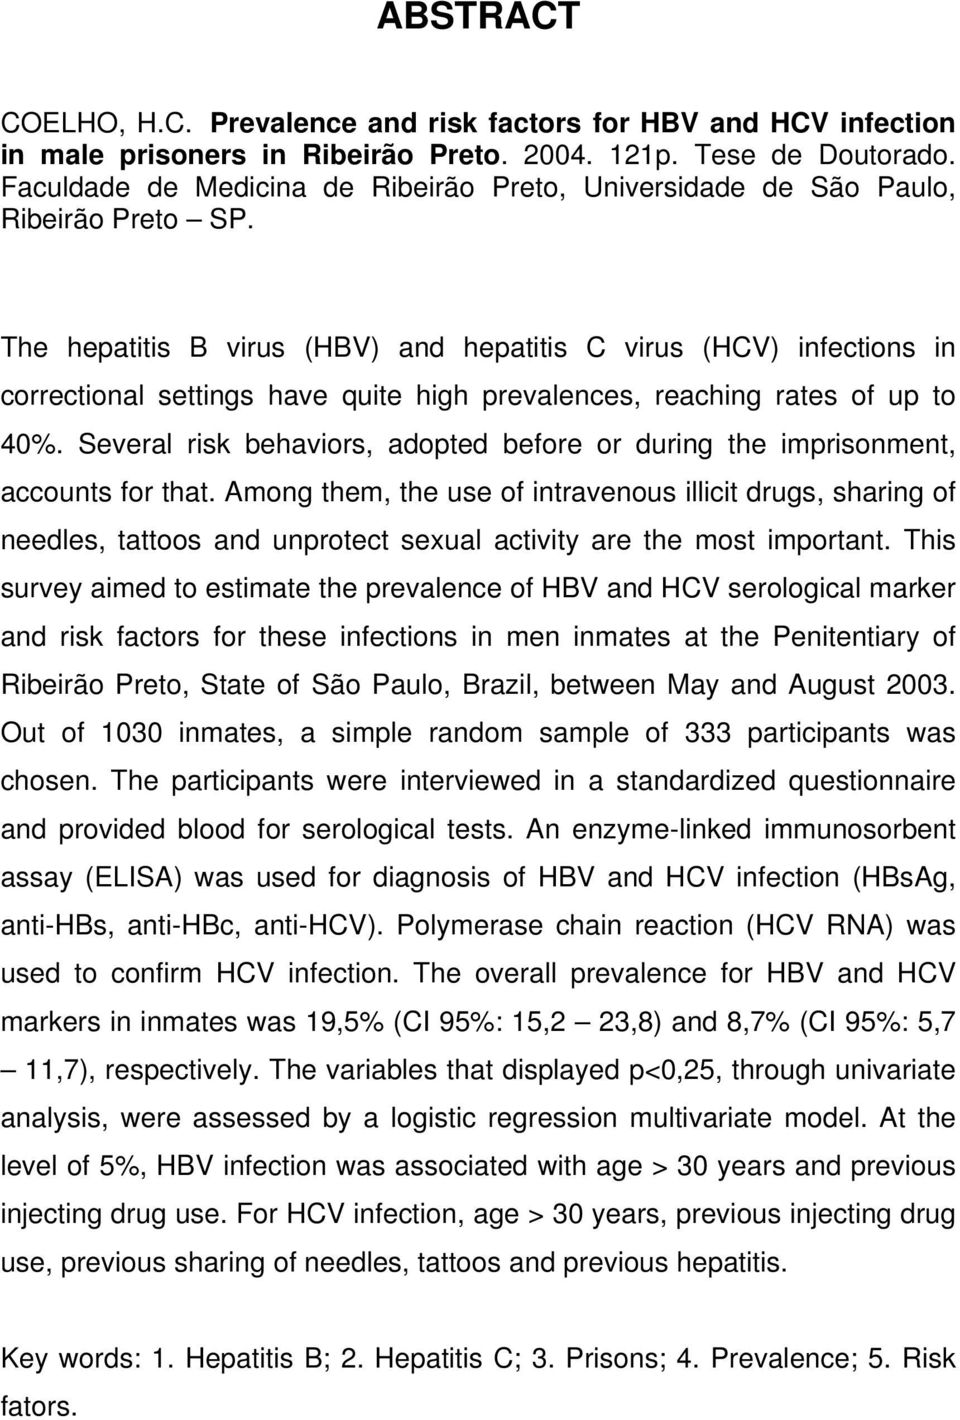 The hepatitis B virus (HBV) and hepatitis C virus (HCV) infections in correctional settings have quite high prevalences, reaching rates of up to 40%.